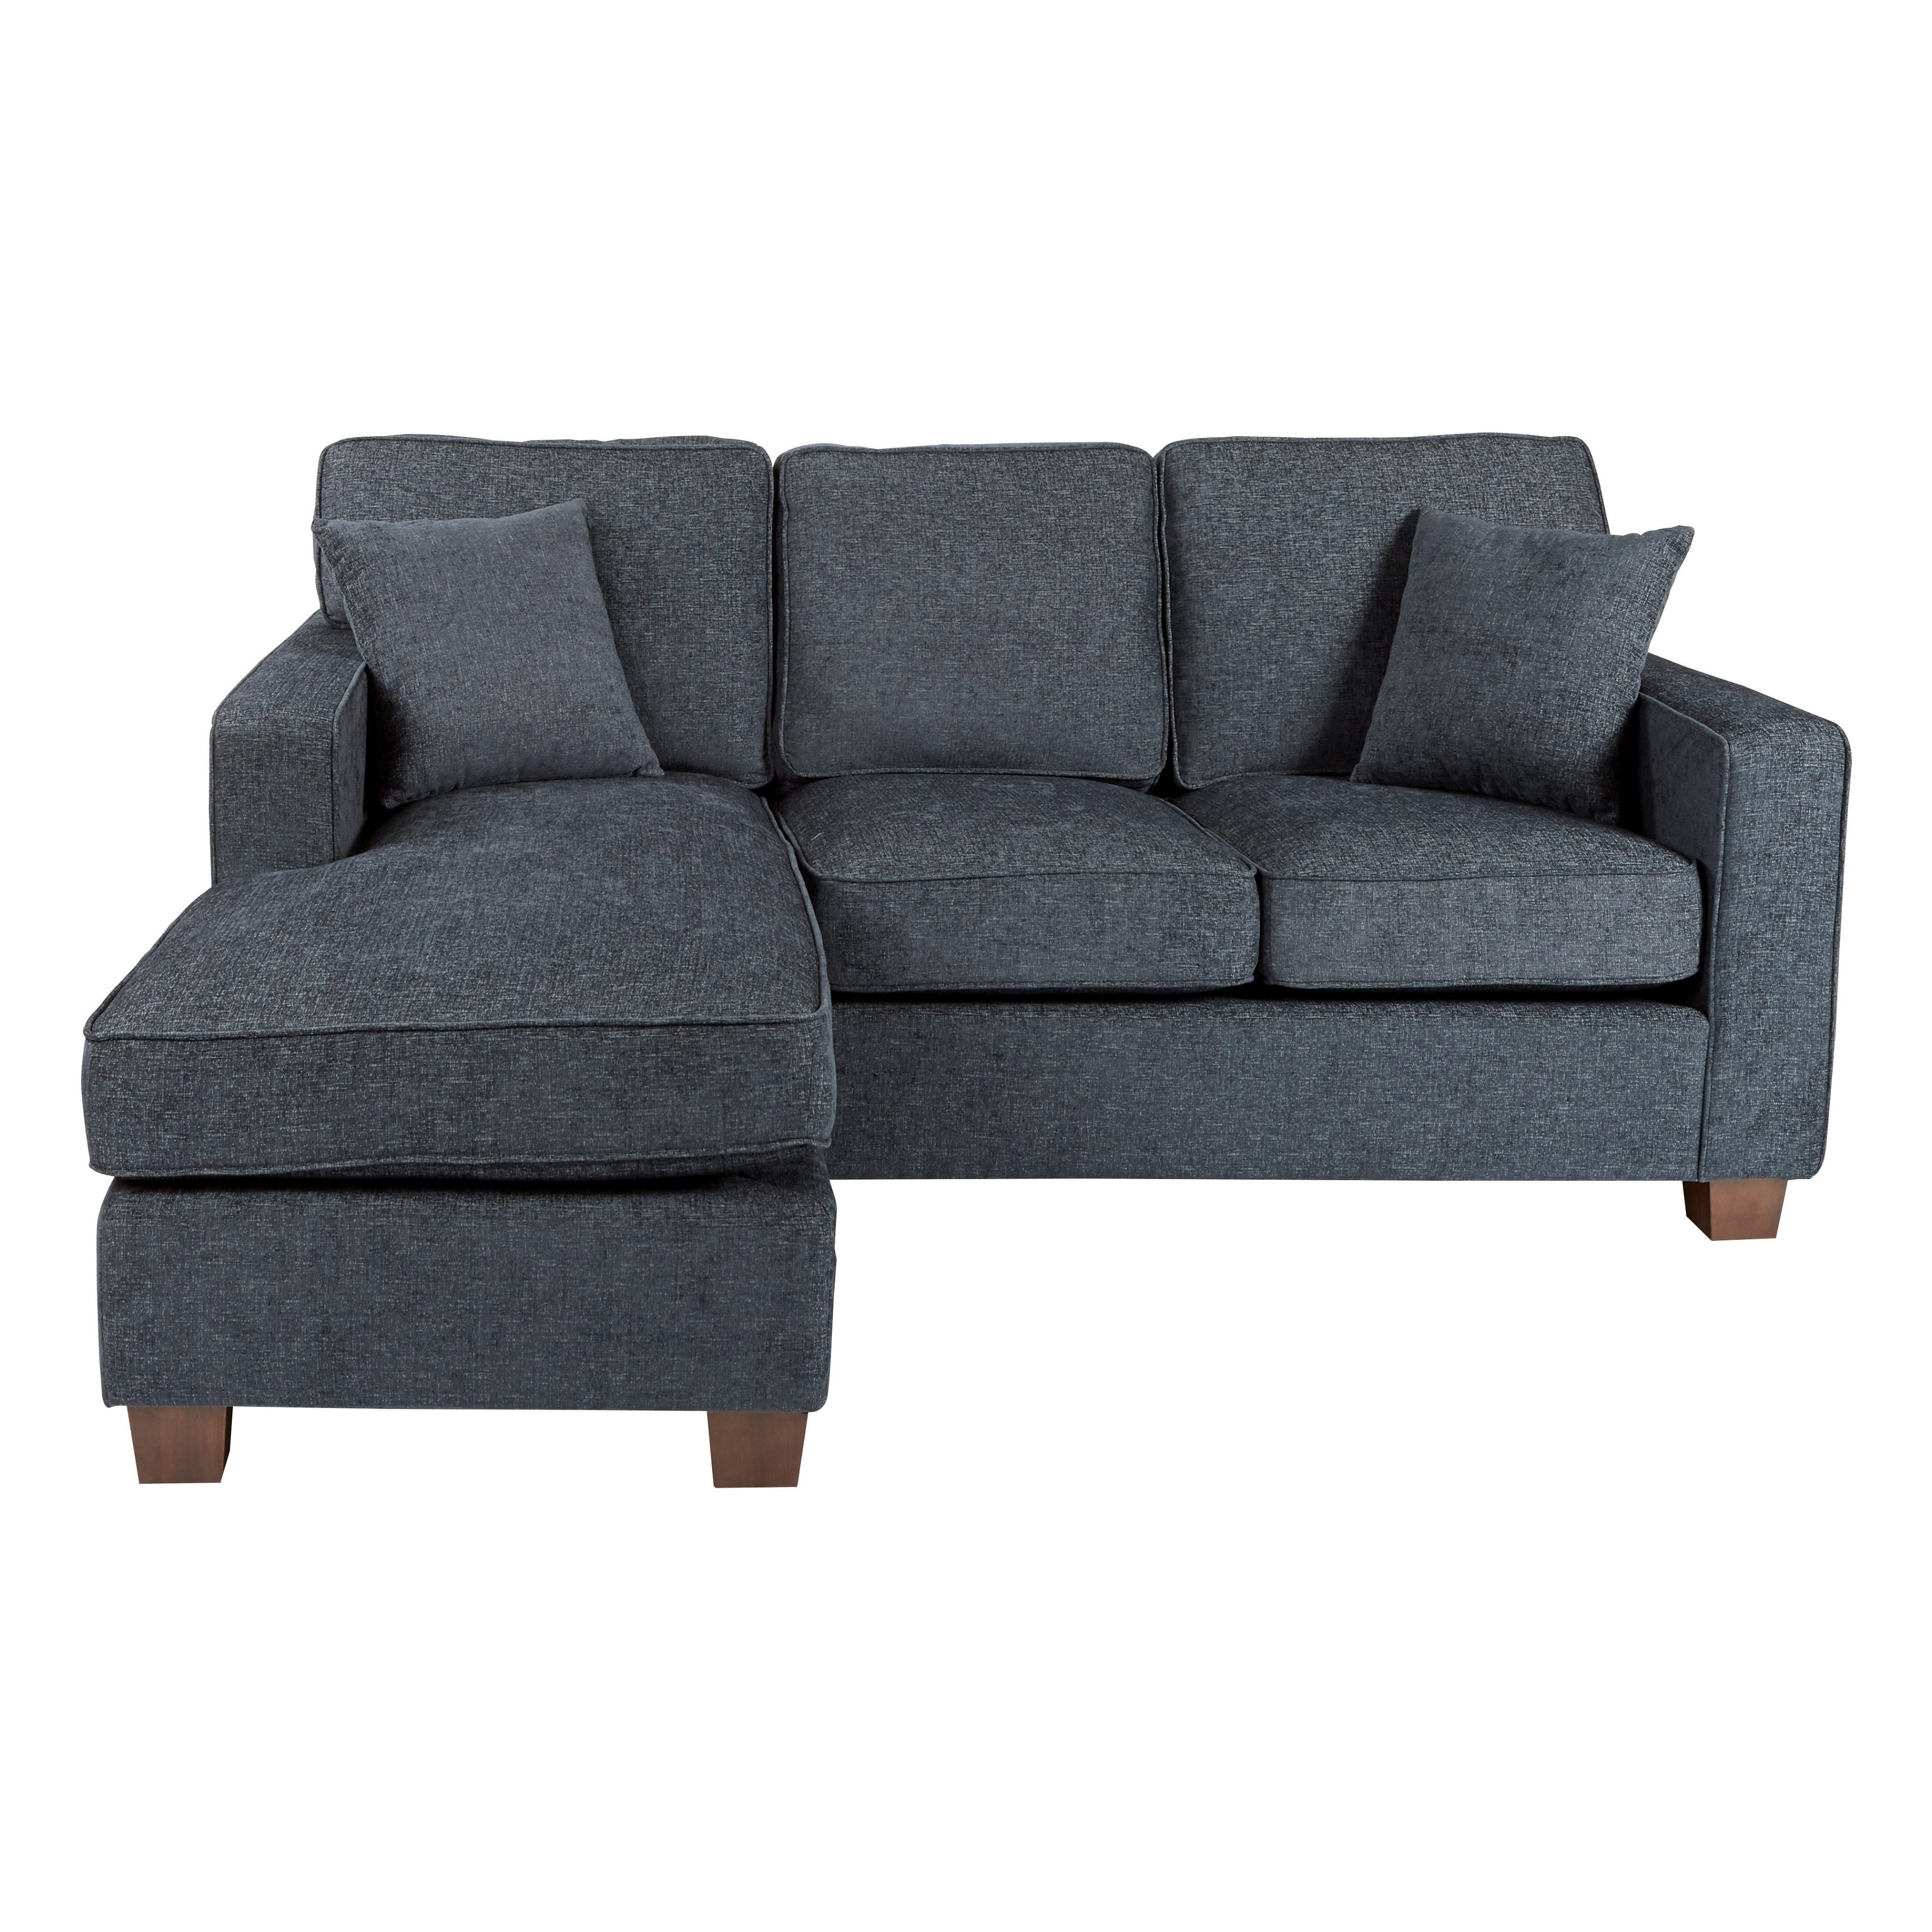 Porch & Den Over The Rhine Renner Reversible Chaise Sectional Sofa With Widely Used Overstock Chaises (View 7 of 15)